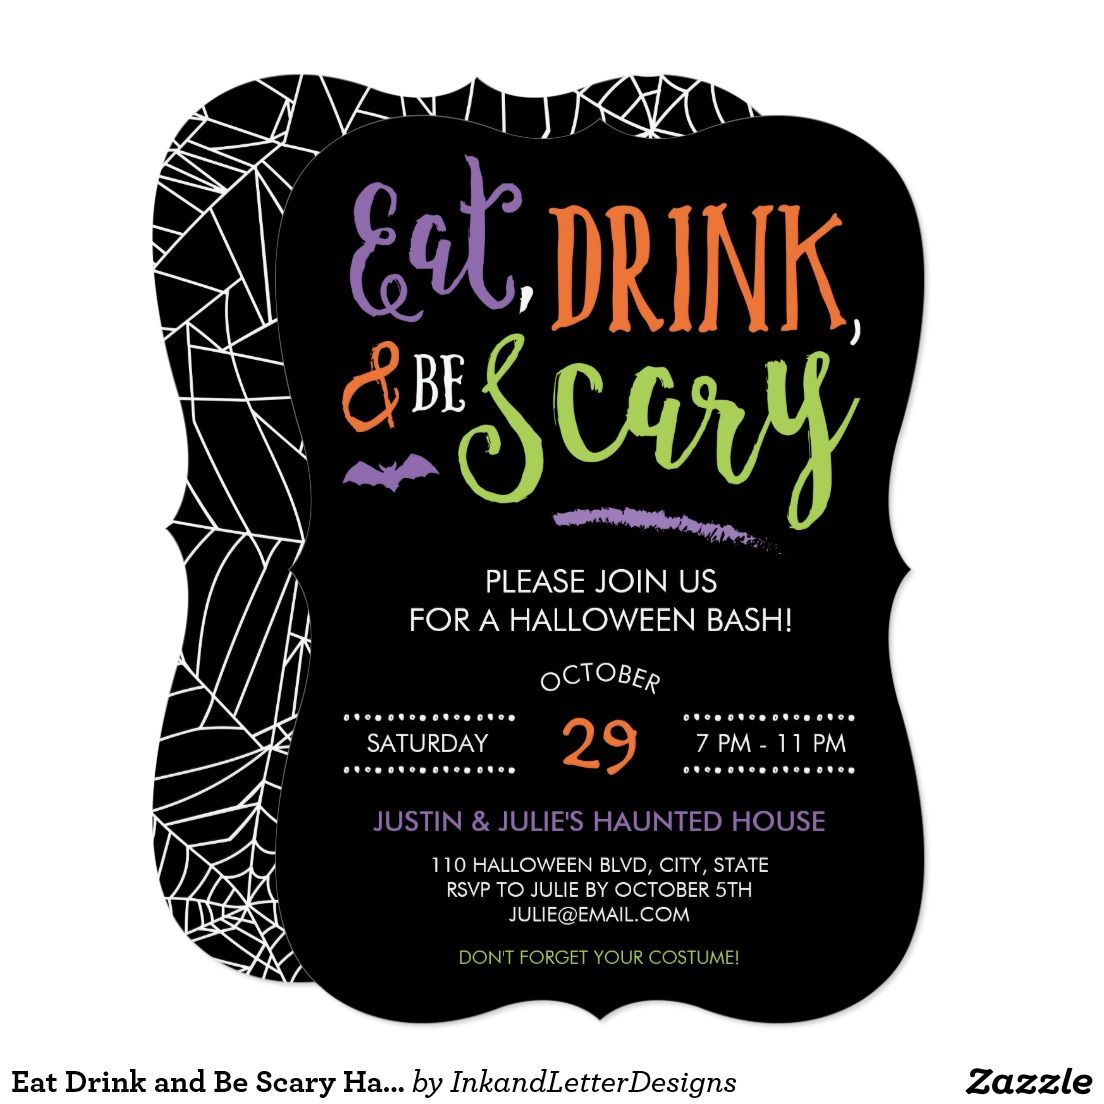 Eat Drink and Be Scary Halloween Party Invitation | Party ideas ...